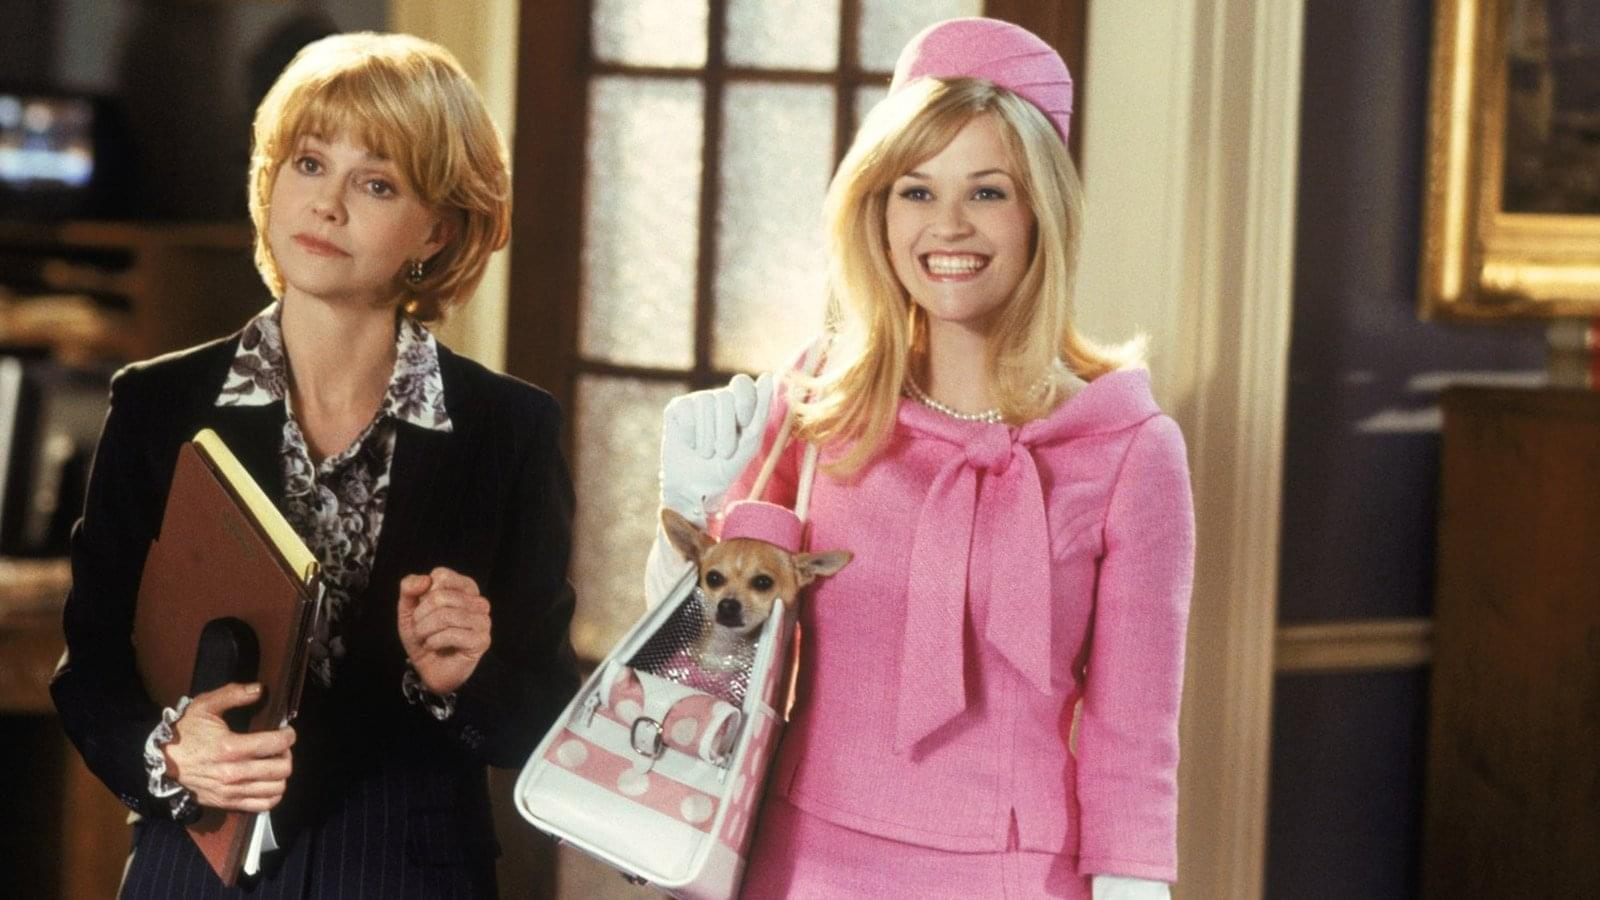 5 Things You Need to Know About 'Legally Blonde 3' [VIDEO]